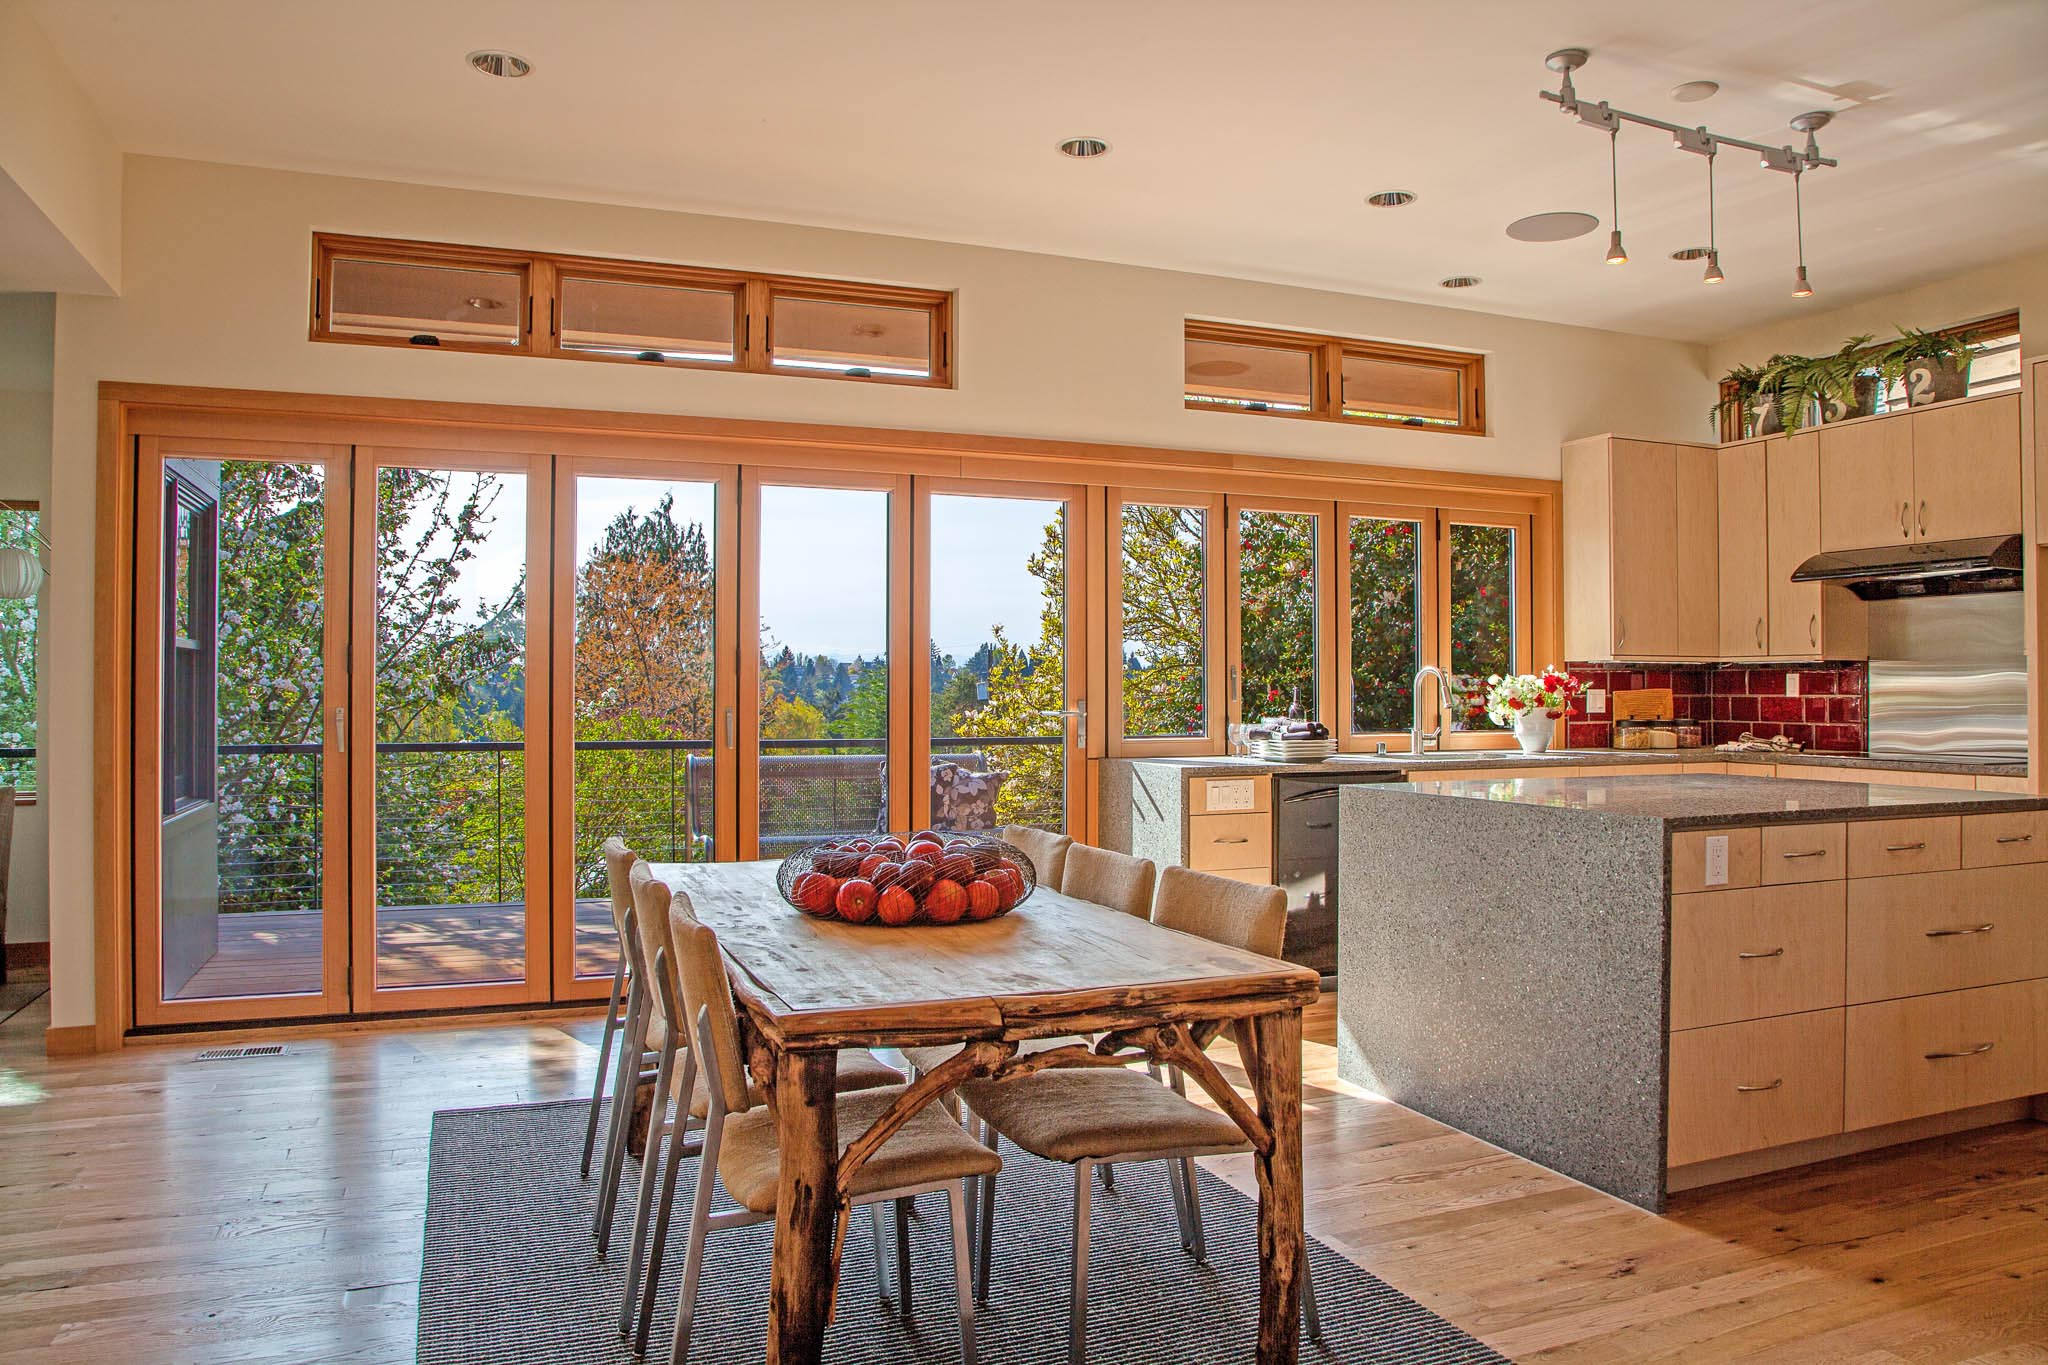 opening glass walls kitchen transition in wood in Seattle home